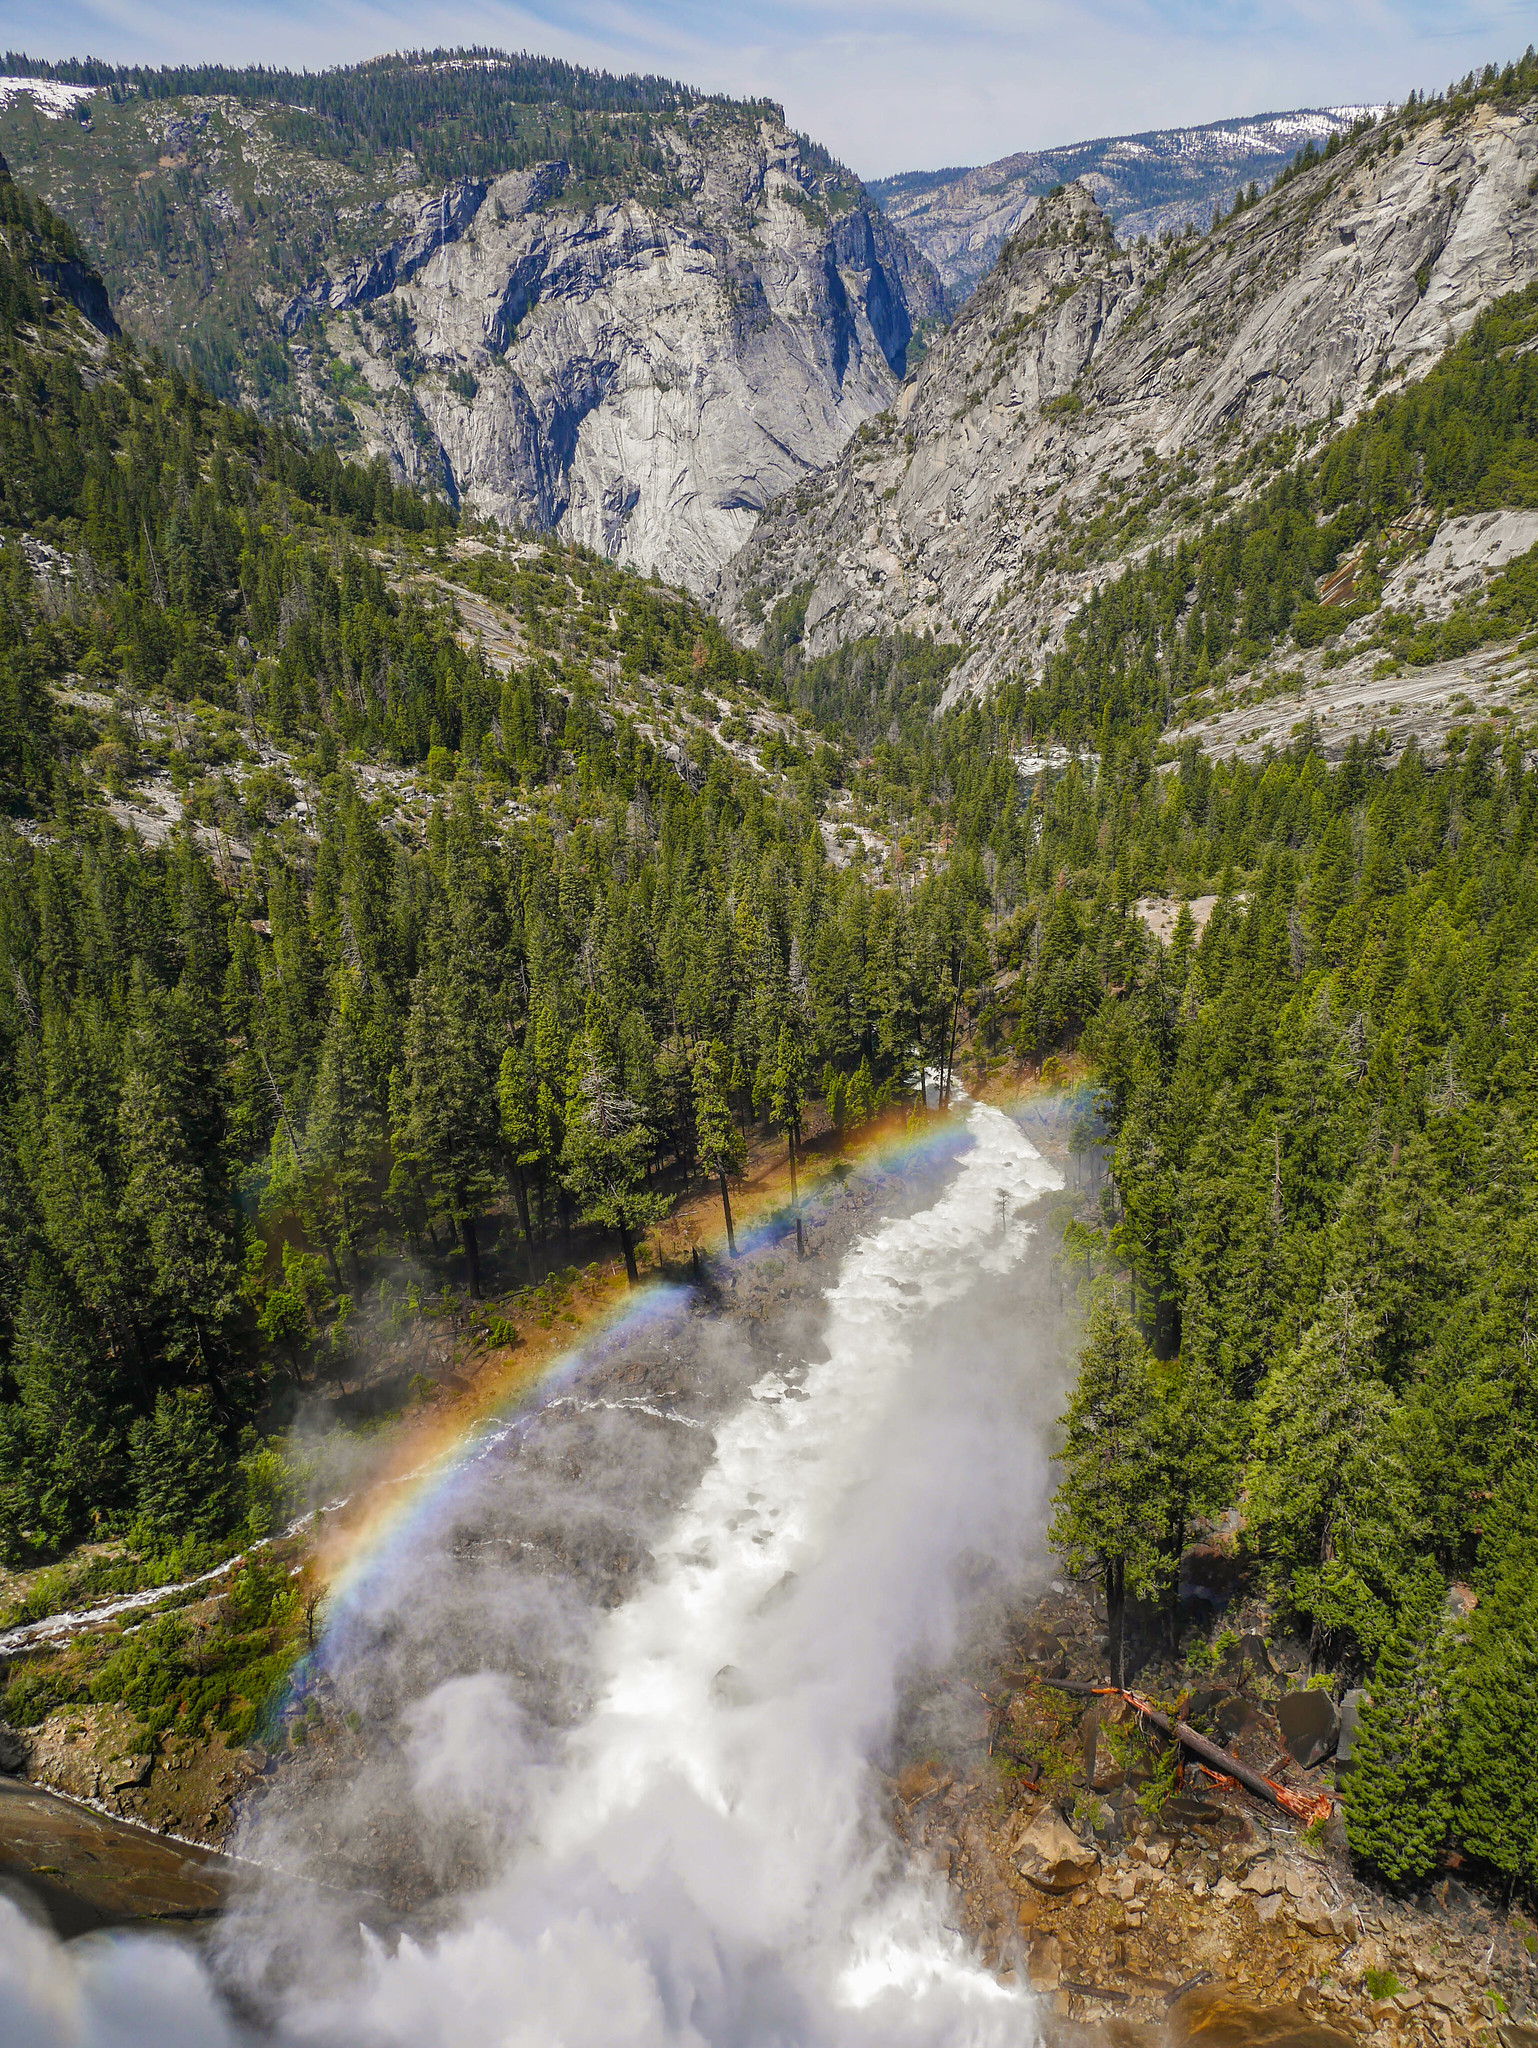 Nevada Fall made some rainbows too